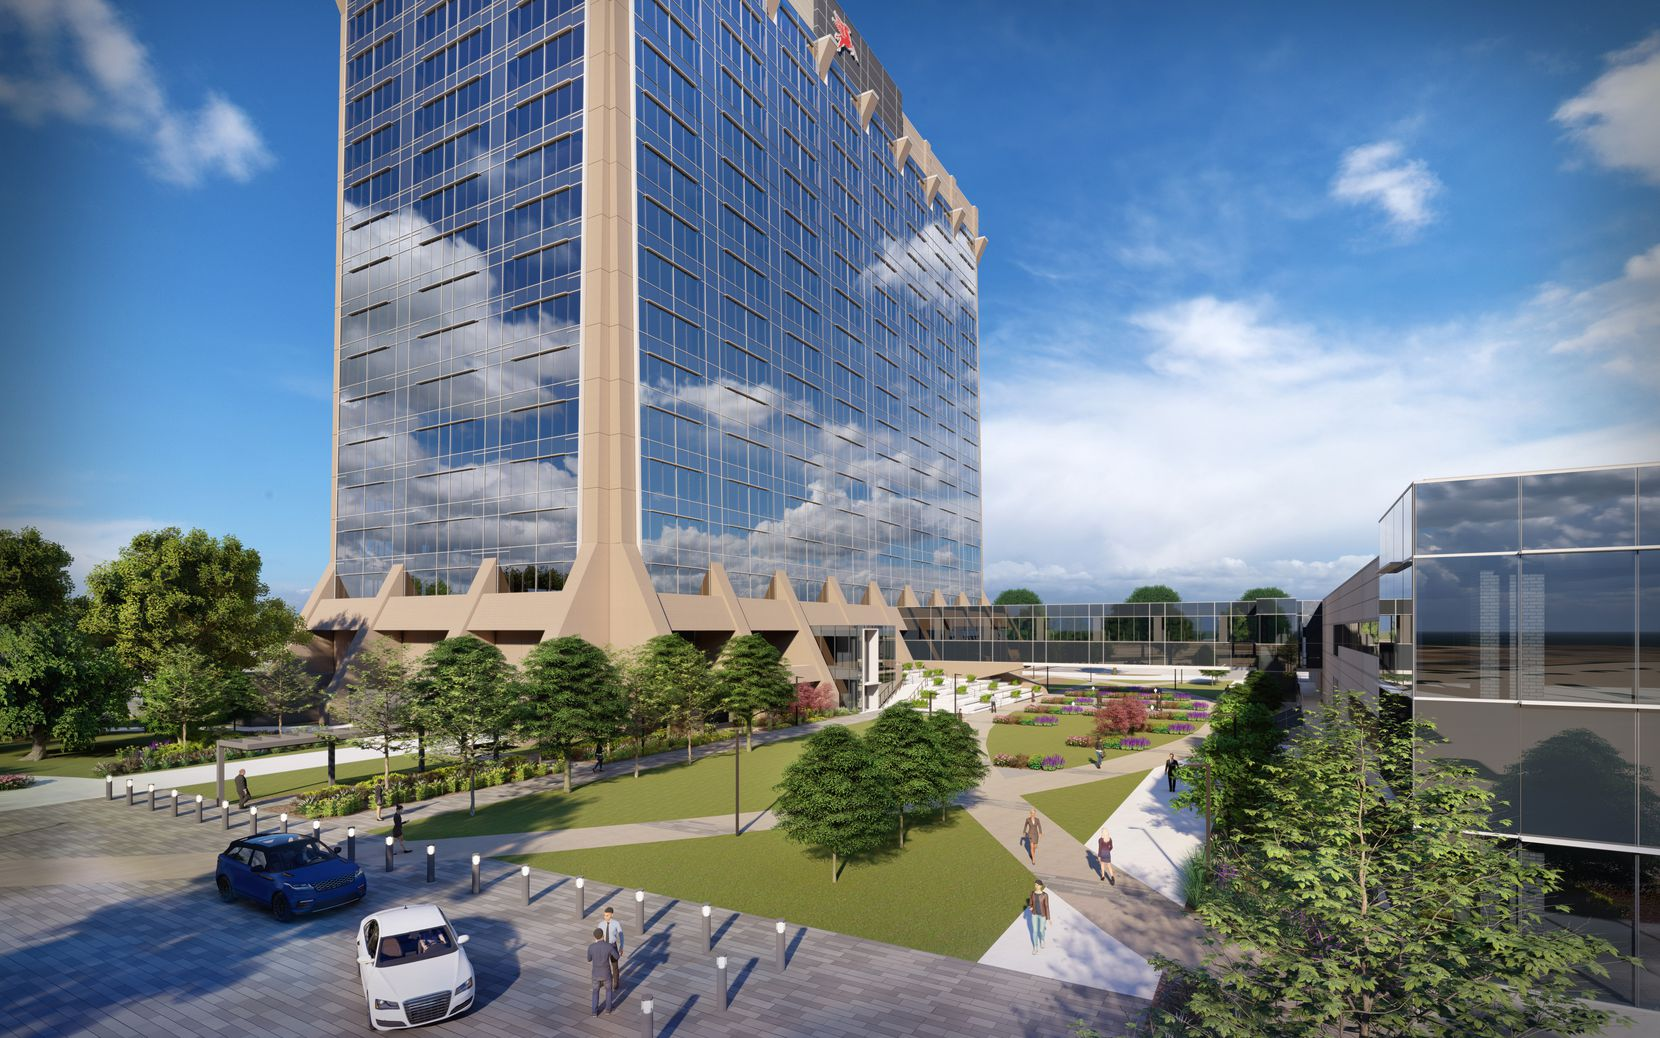 The 18-story tower will get a new glass exterior and complete redo inside.